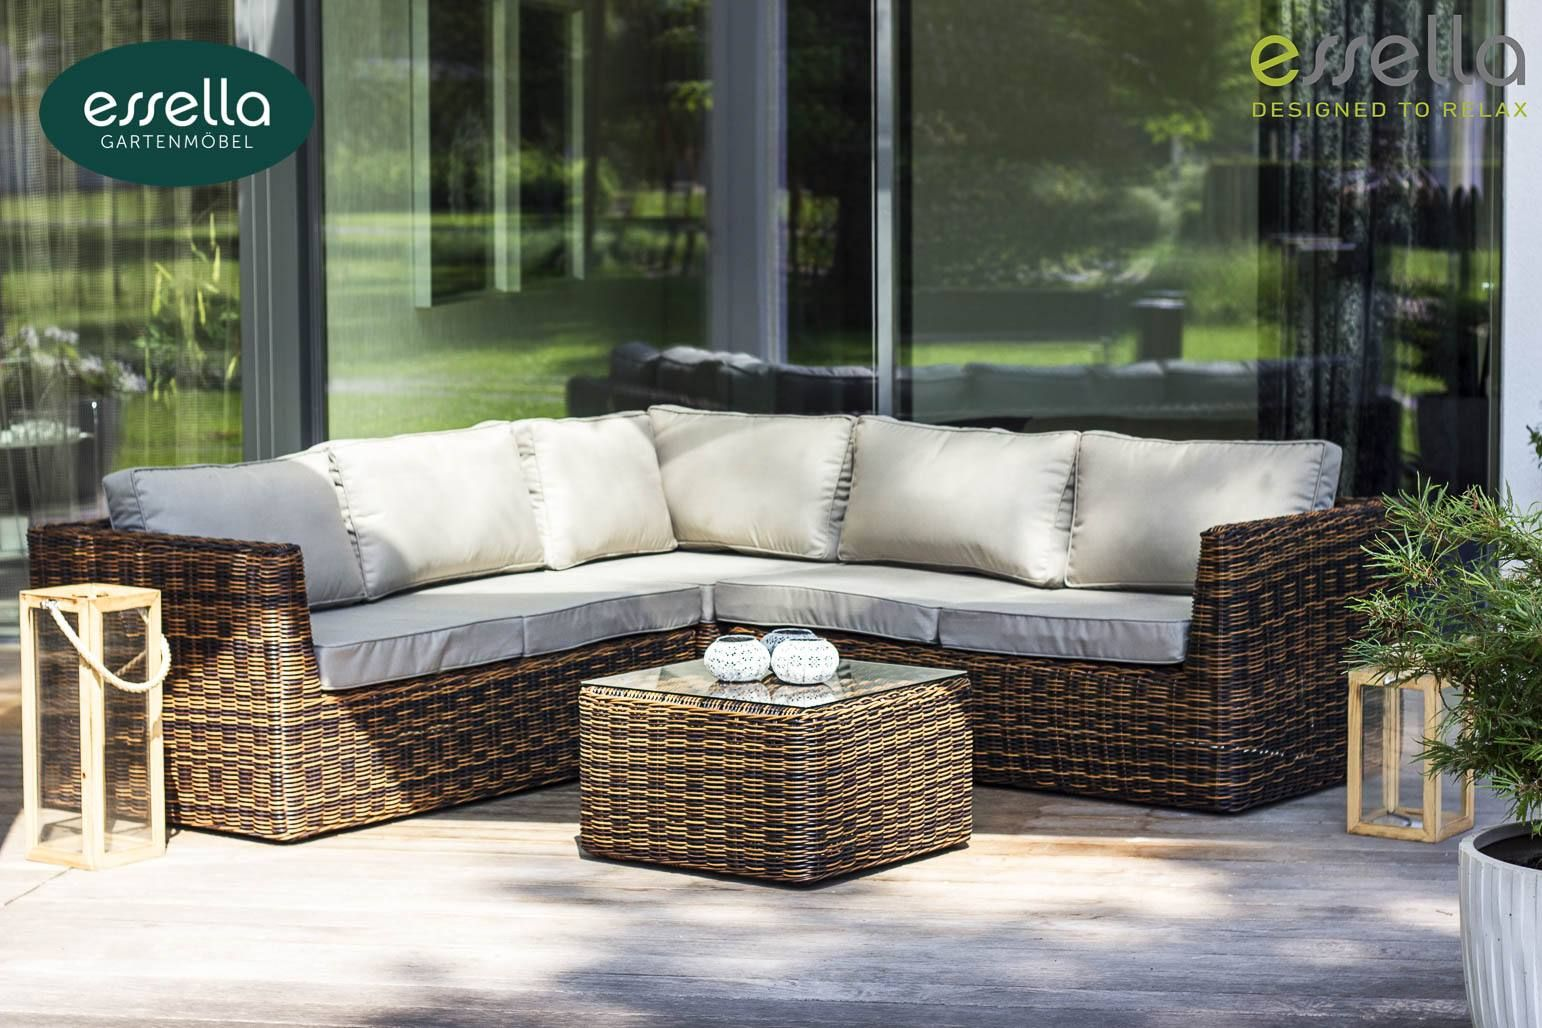 Loungemöbel Outdoor Essella Polyrattan Lounge Möbel Oslo Für 5 Pers In Rundgeflecht